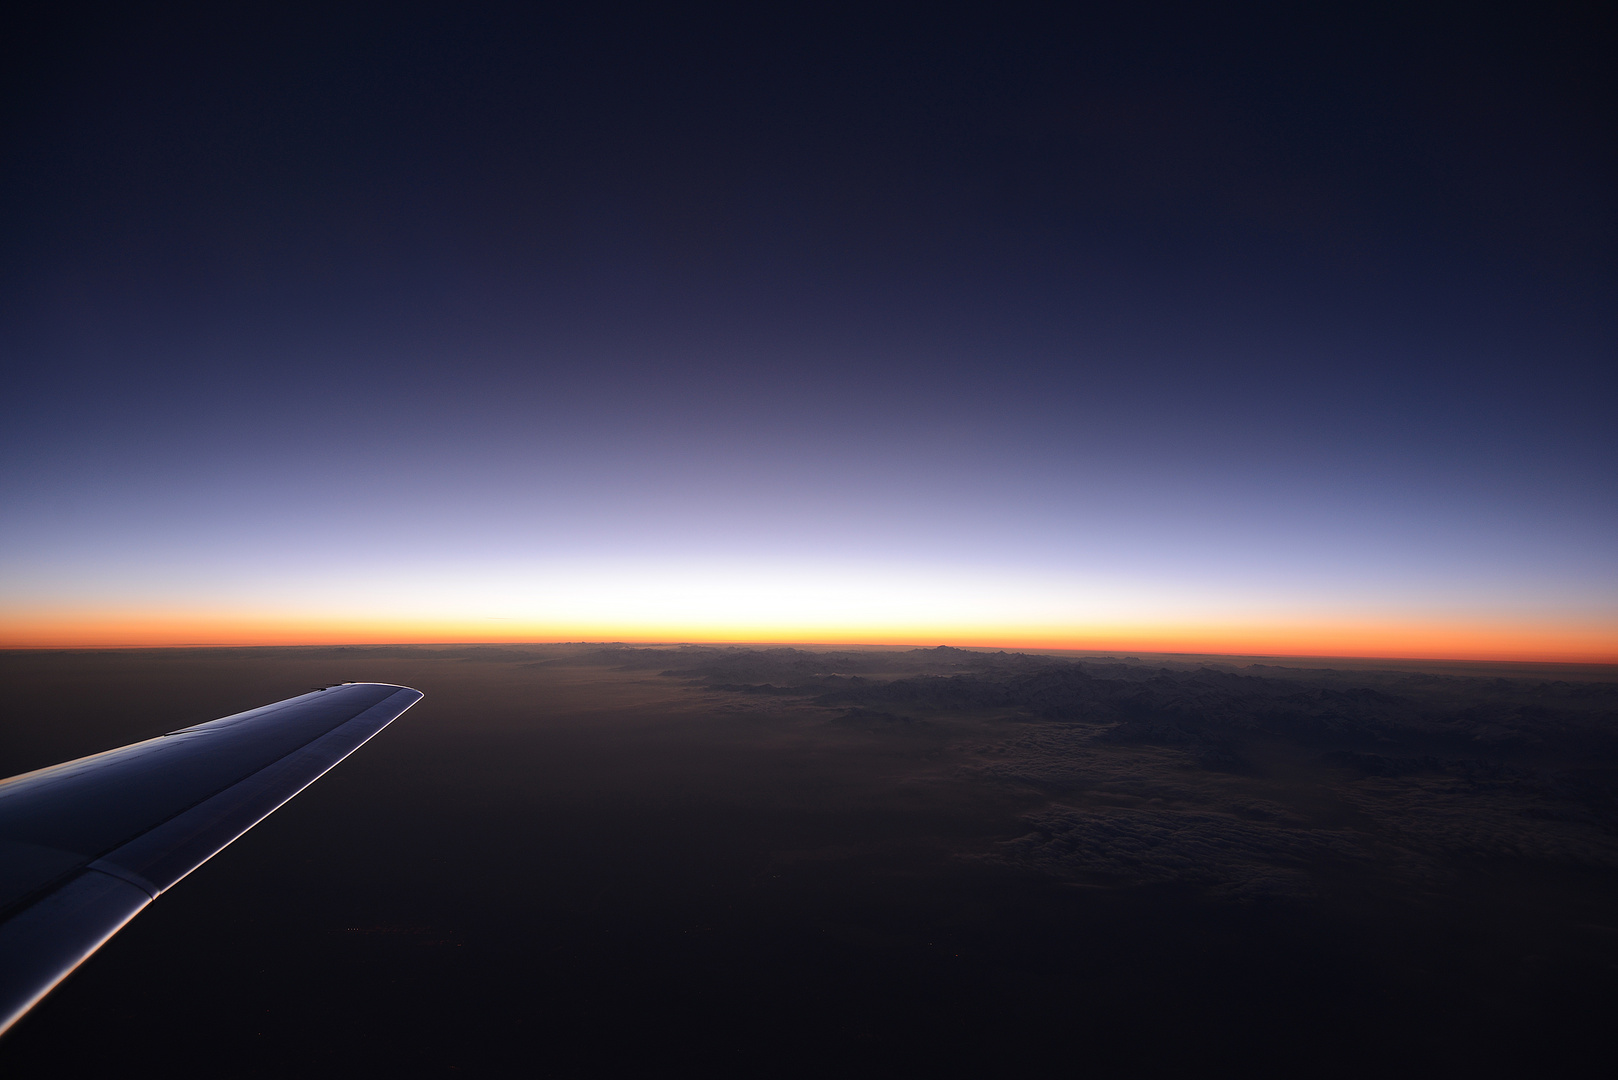 Up in the Air - Sunset